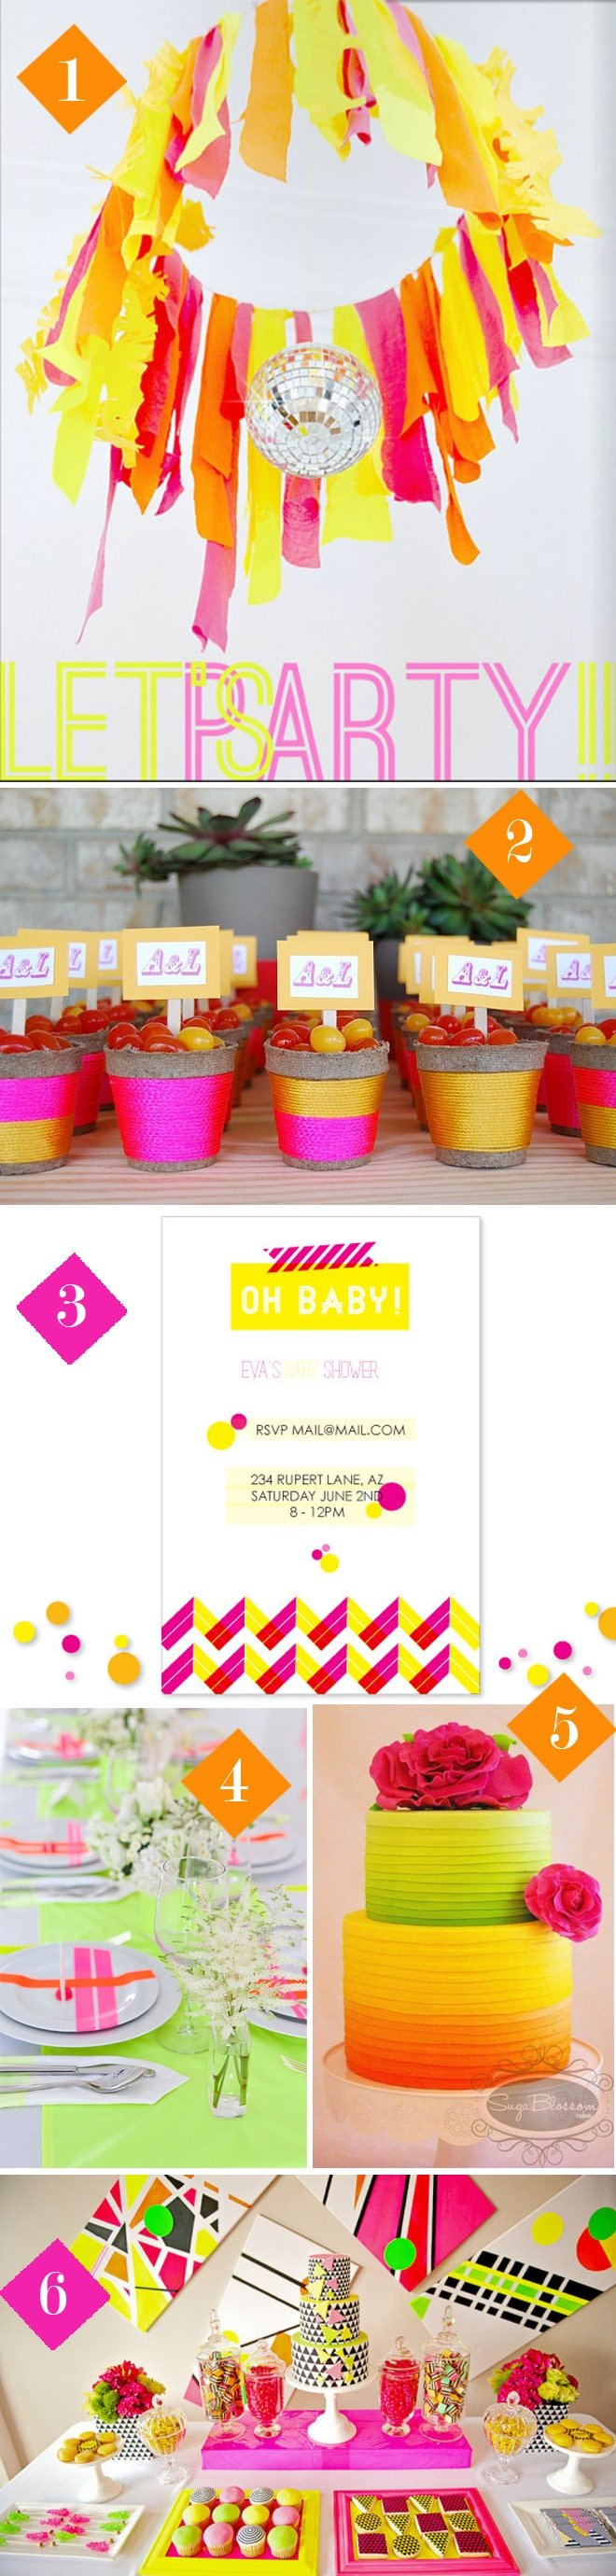 Awesome Neon Wedding and Party Details and Decorations!